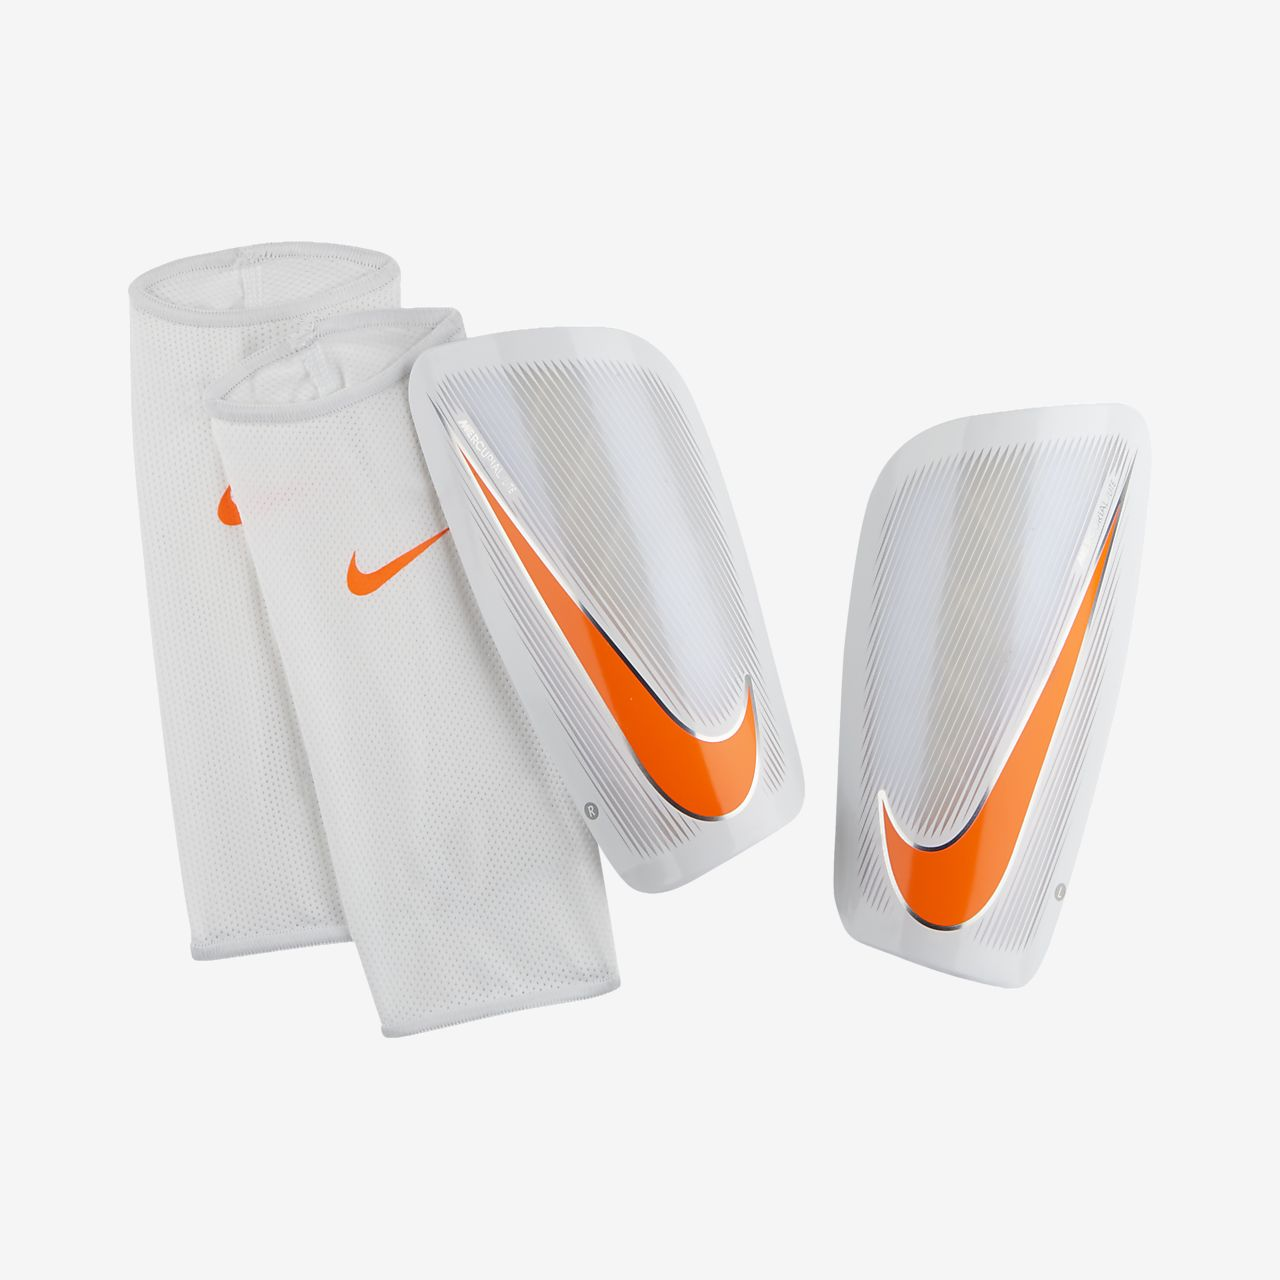 71c79dcc131b Nike Mercurial Lite Football Shinguards. Nike.com SG